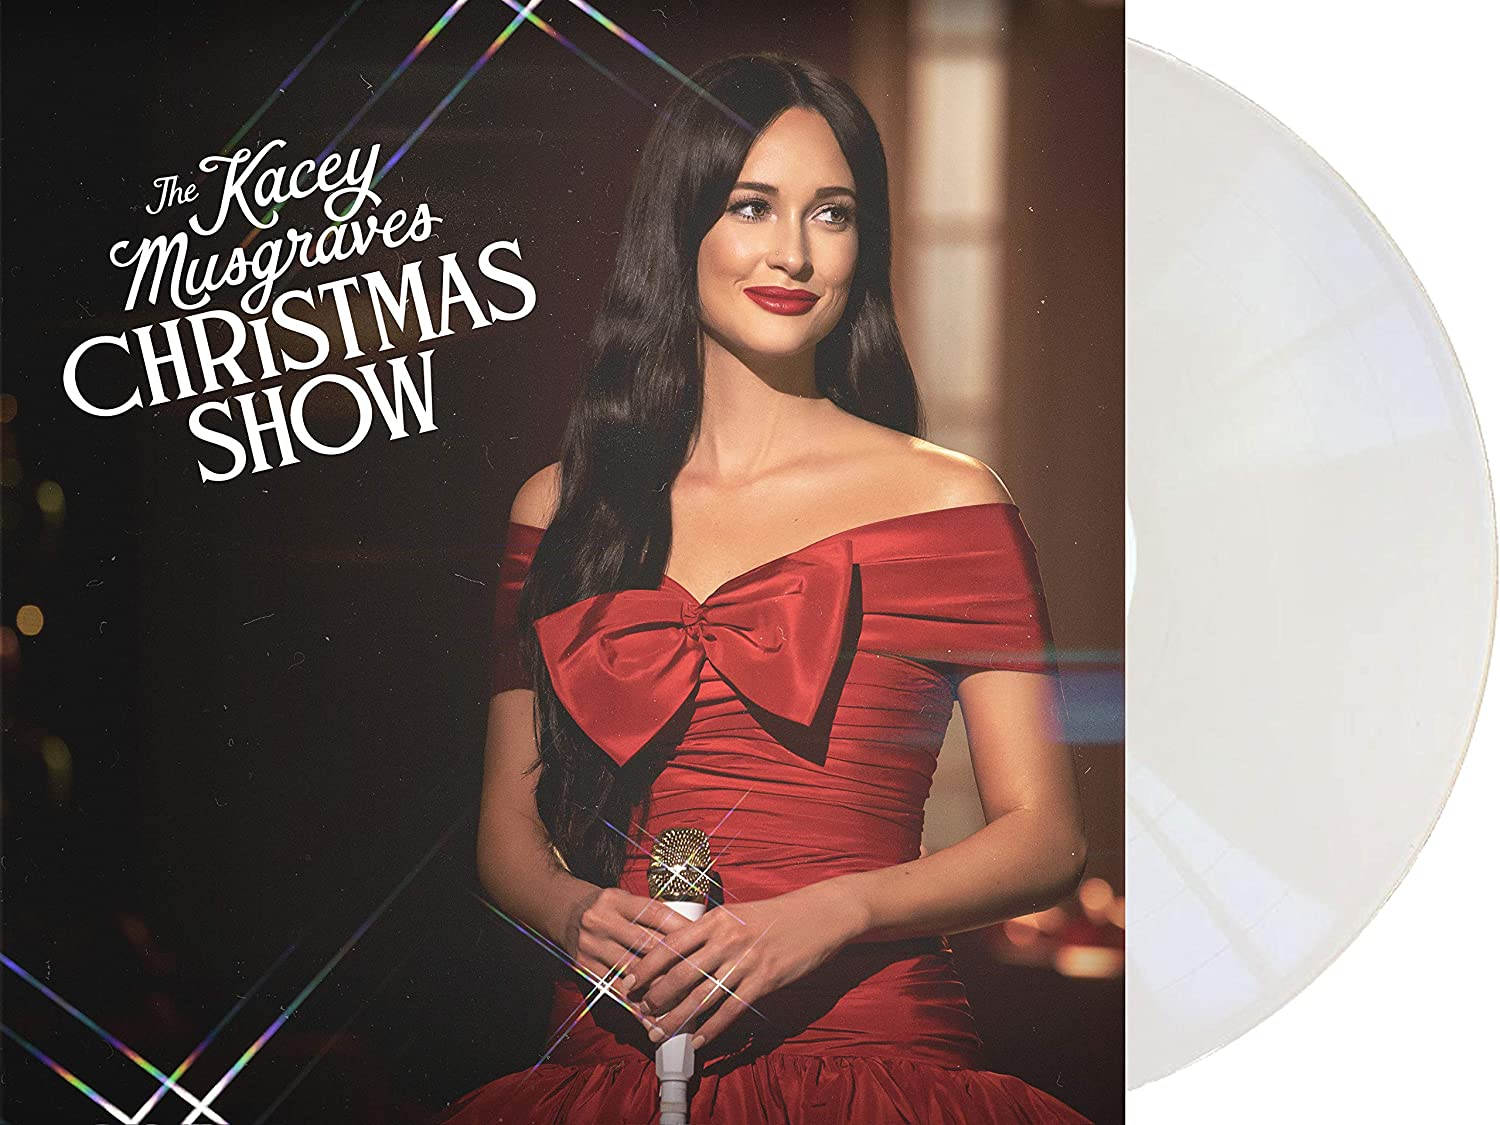 Kacey Musgraves - The Kacey Musgraves Christmas Show [LP] (White Vinyl)